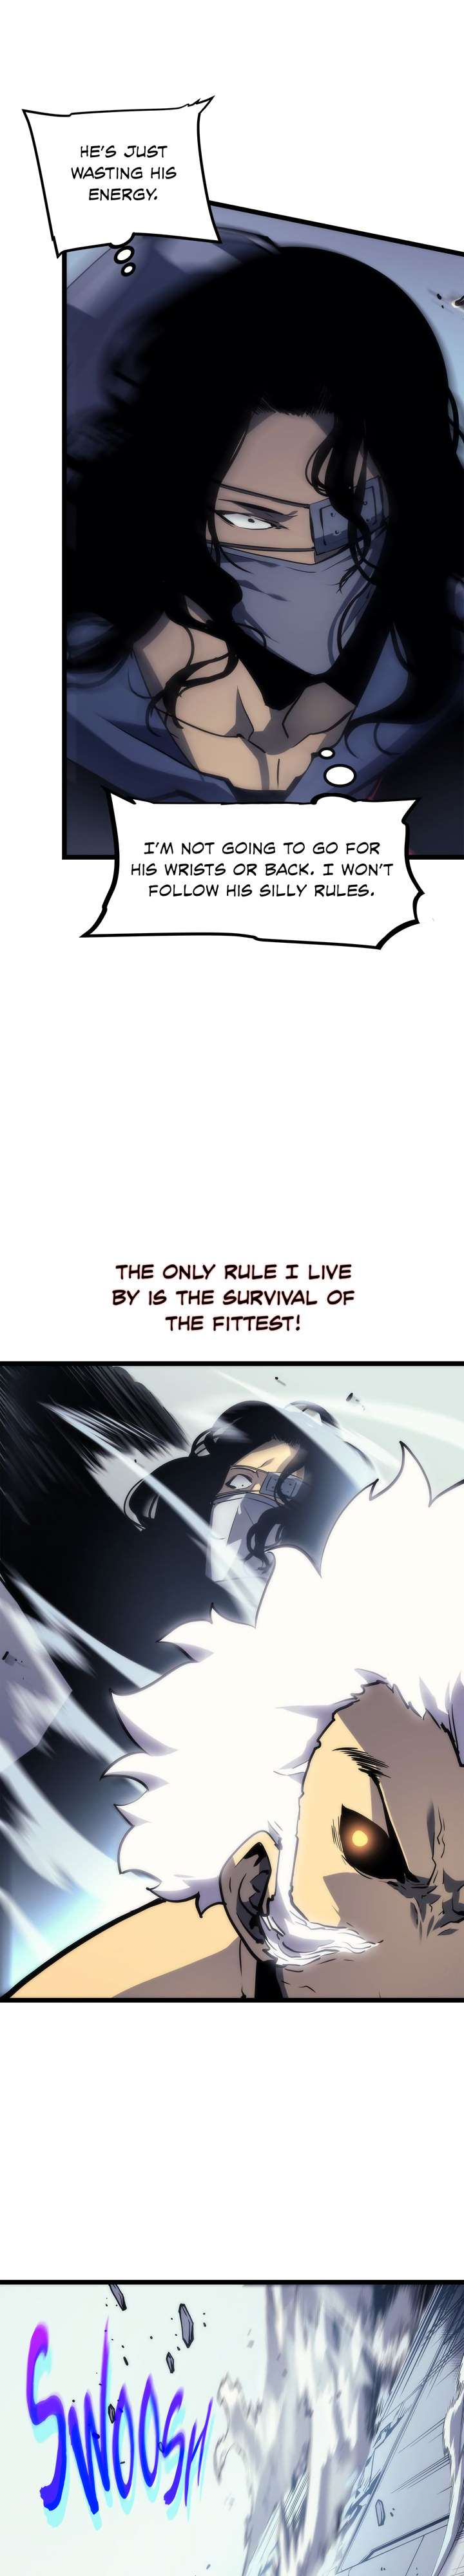 Solo Leveling Chapter 92 Page 12